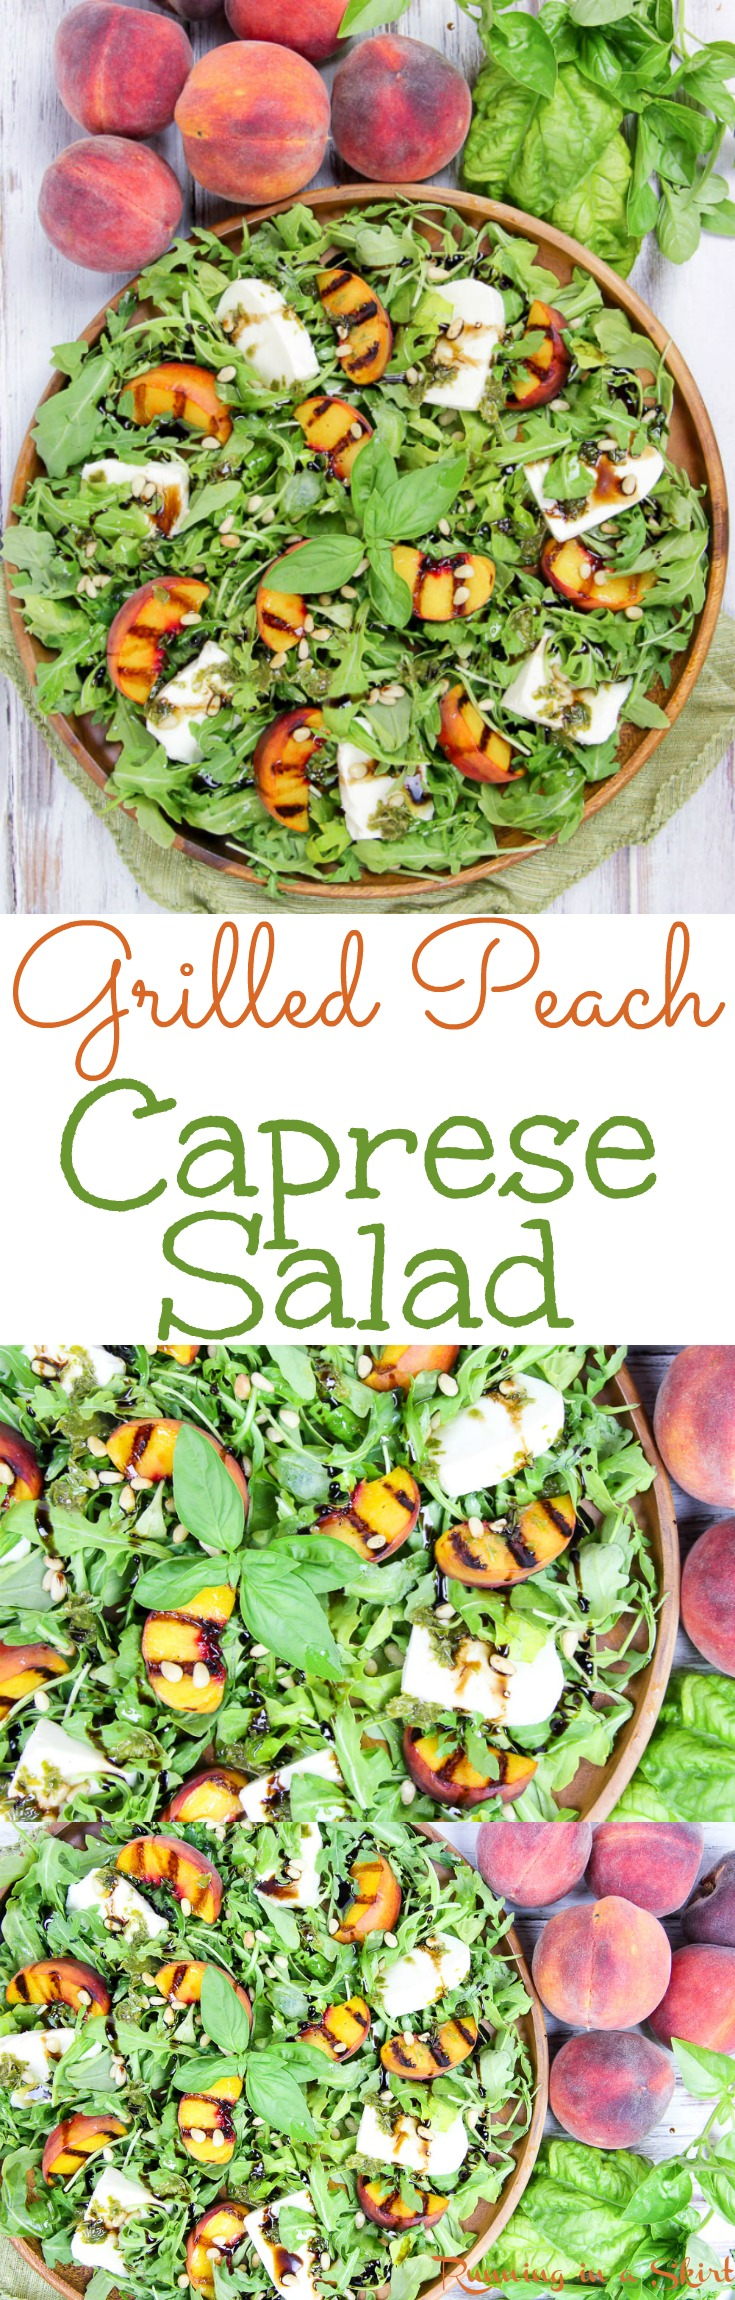 Caprese Grilled Peach Salad recipe. The best summer salad with peaches, arugula, fresh mozzarella cheese, pine nuts, homemade basil dressing and a balsamic glaze. So delicious! / Running in a Skirt